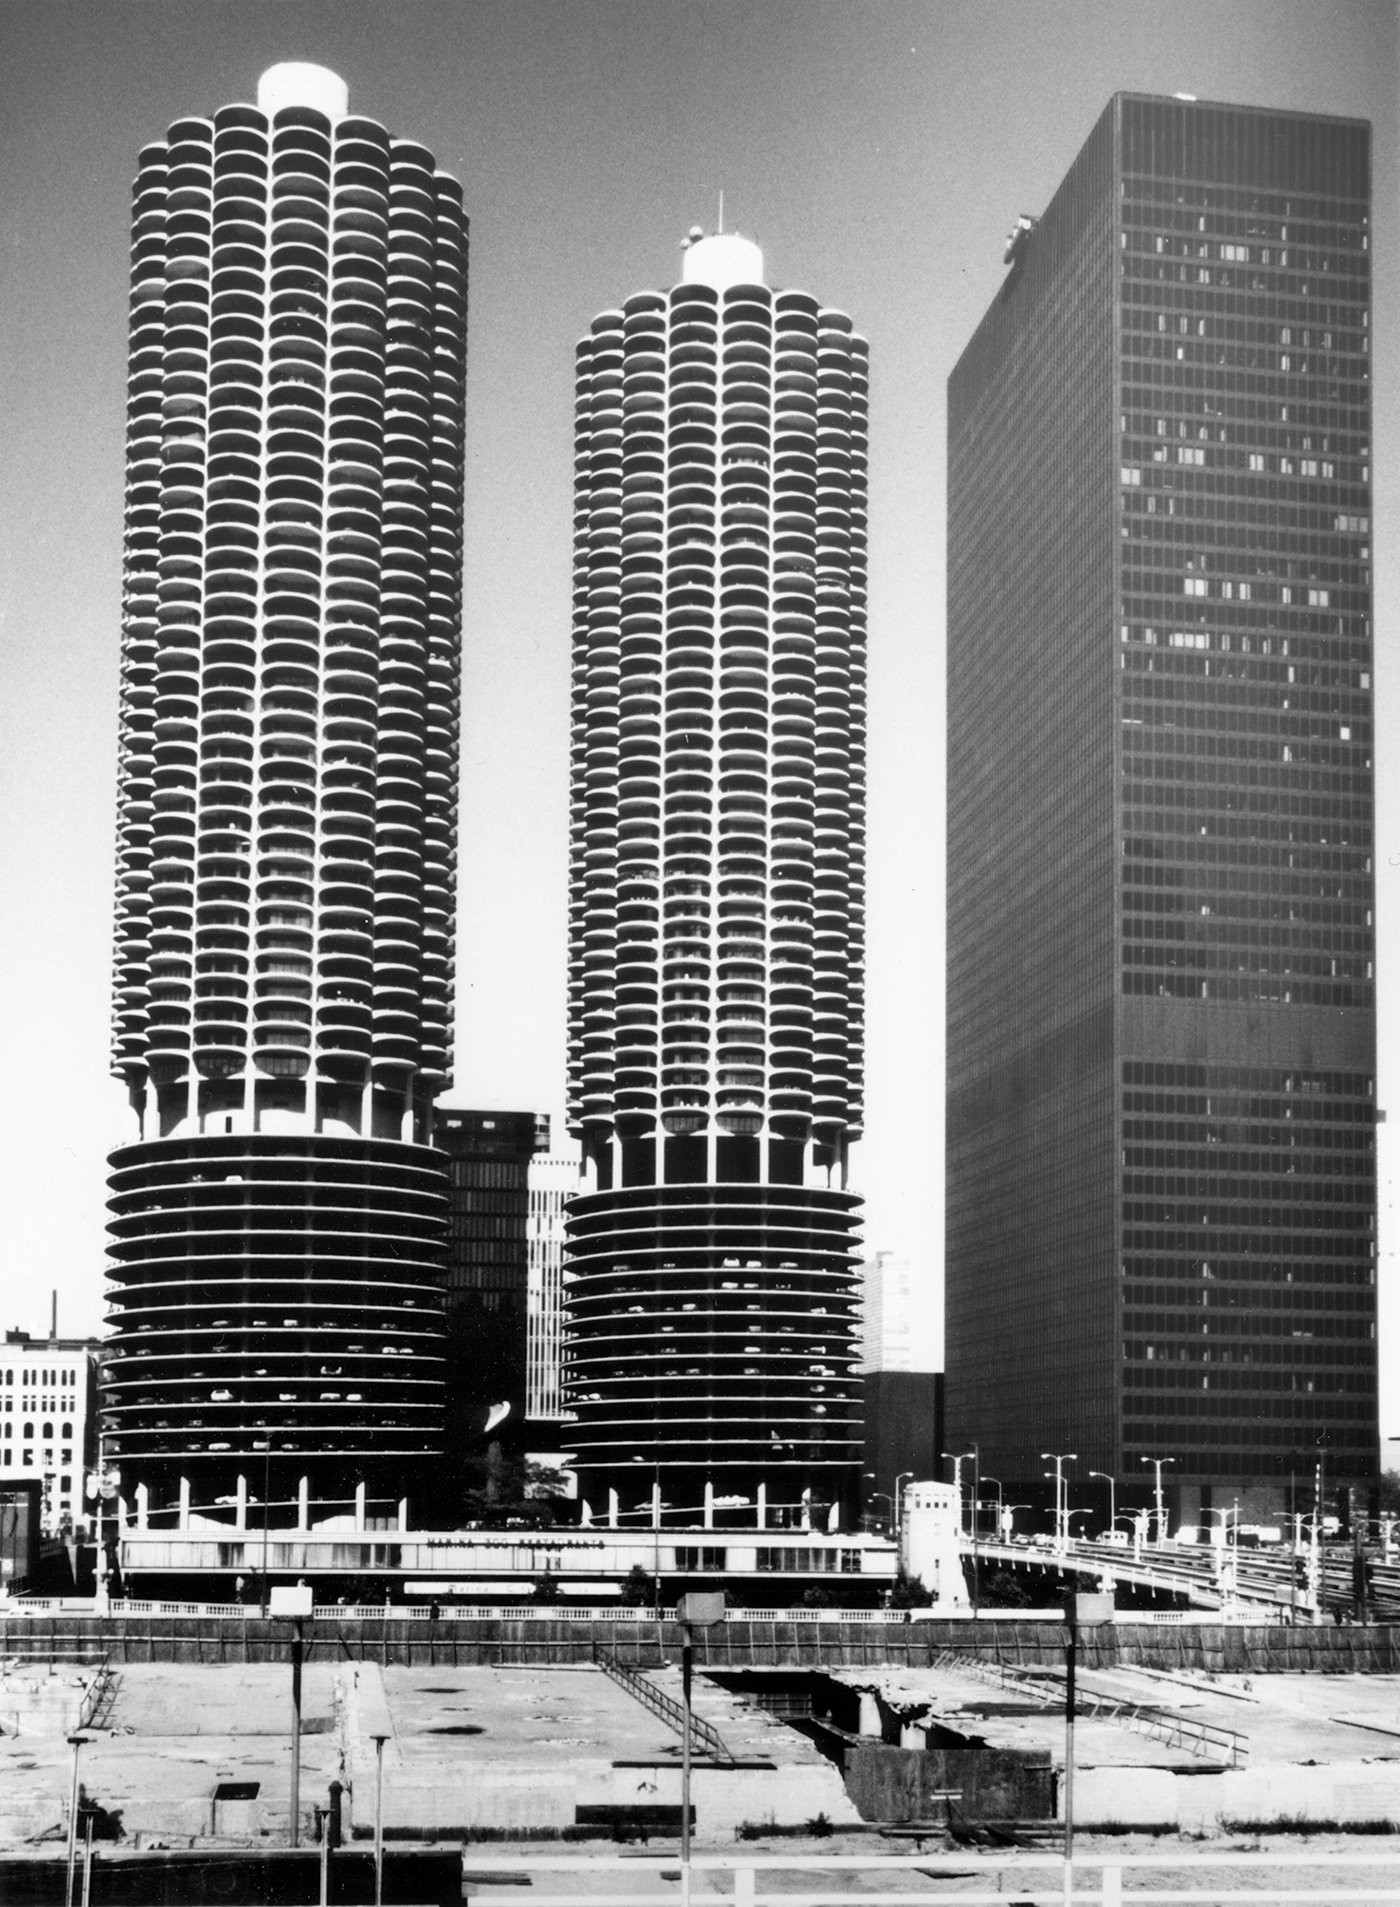 Completed in 1967, Marina City is often regarded as a 'city within a city.' Before downtown Chicago became a trendy neighborhood, Goldberg was one of the earliest pioneers who wanted to bring a new lease of life into the then-crumbling area. Now a landmark and highly sought-after residential tower, this skyscraper is often regarded as one of the city's most iconic designs. (Photo: Ryerson and Burnham Archives, The Tale of Tomorrow)